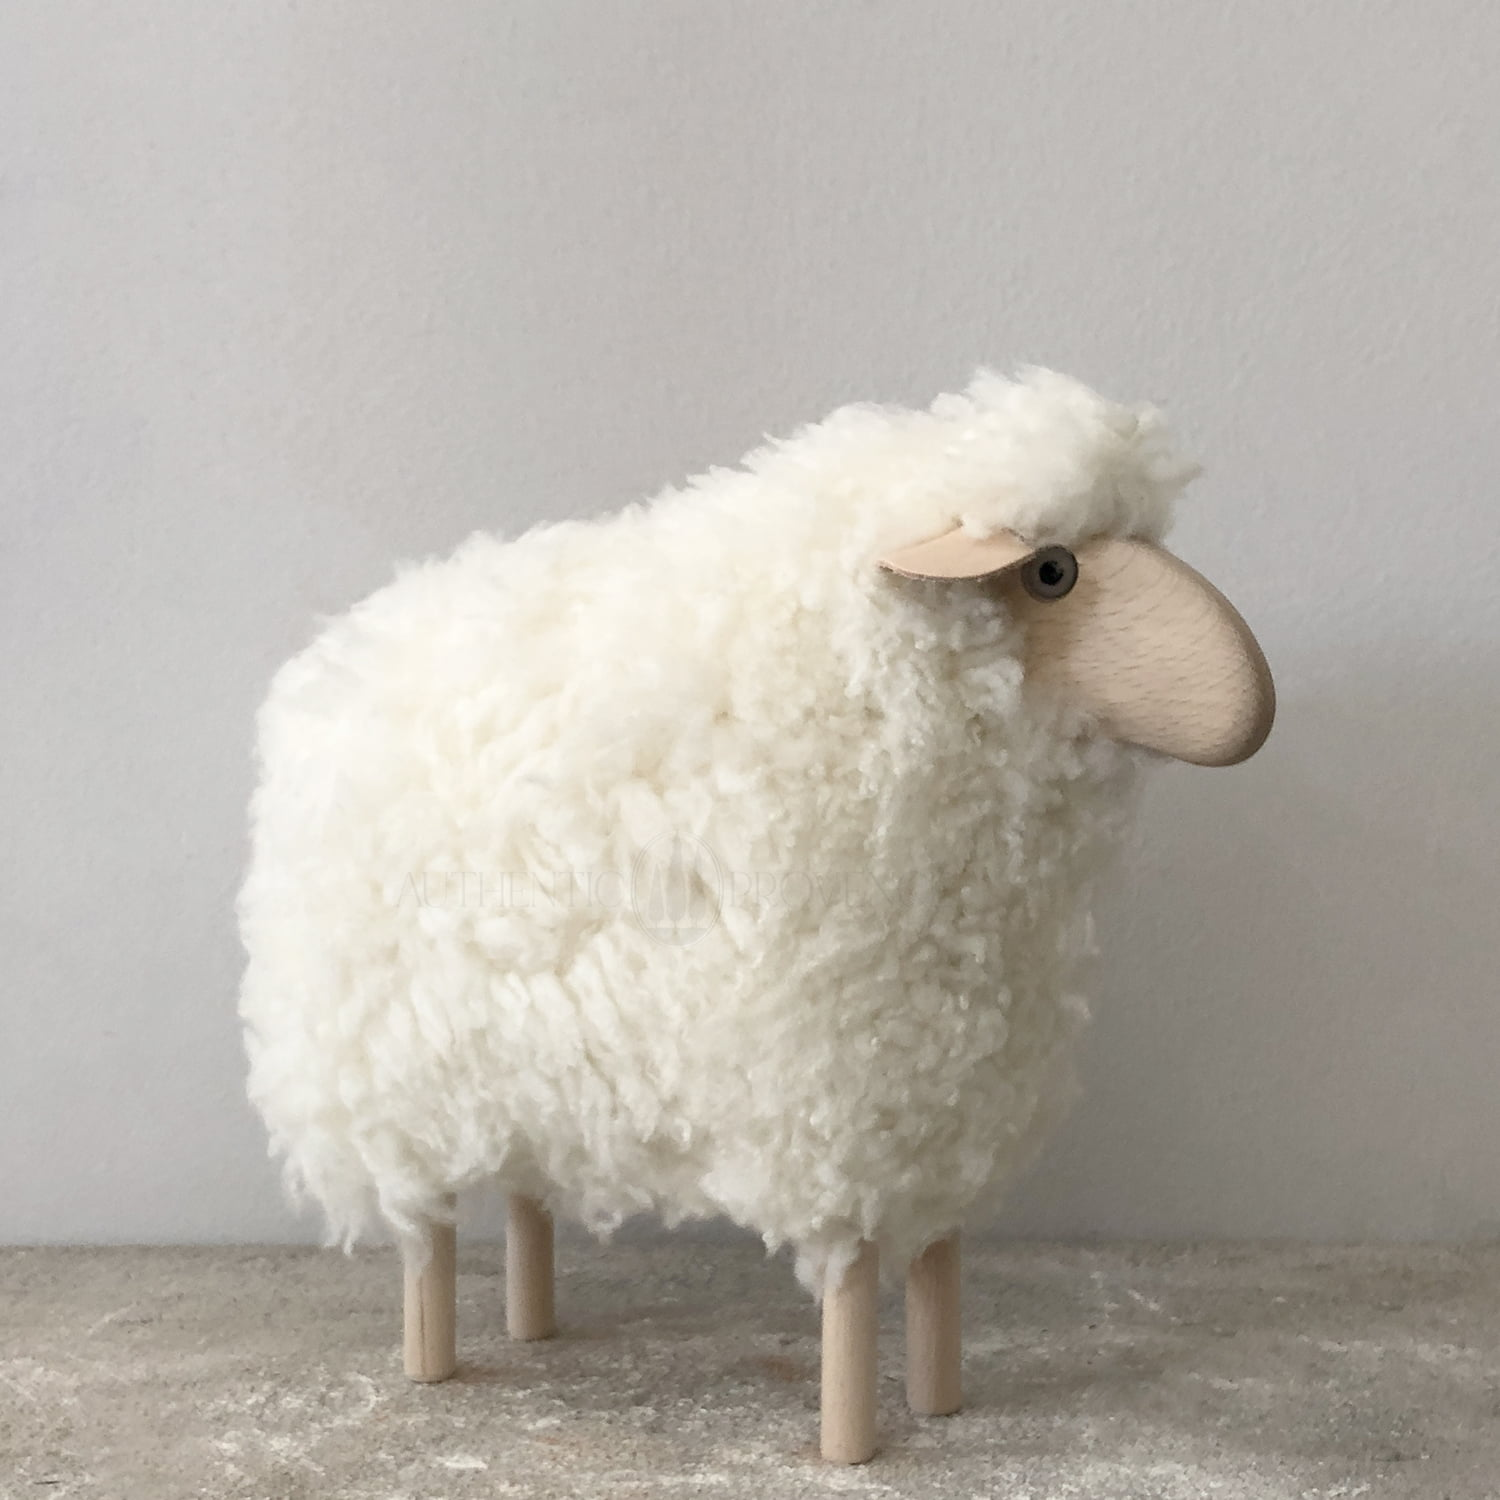 An extra small sheep hand crafted with a glass eyes, sheepskin fur body, wooden legs and snout with light colored genuine leather ears.